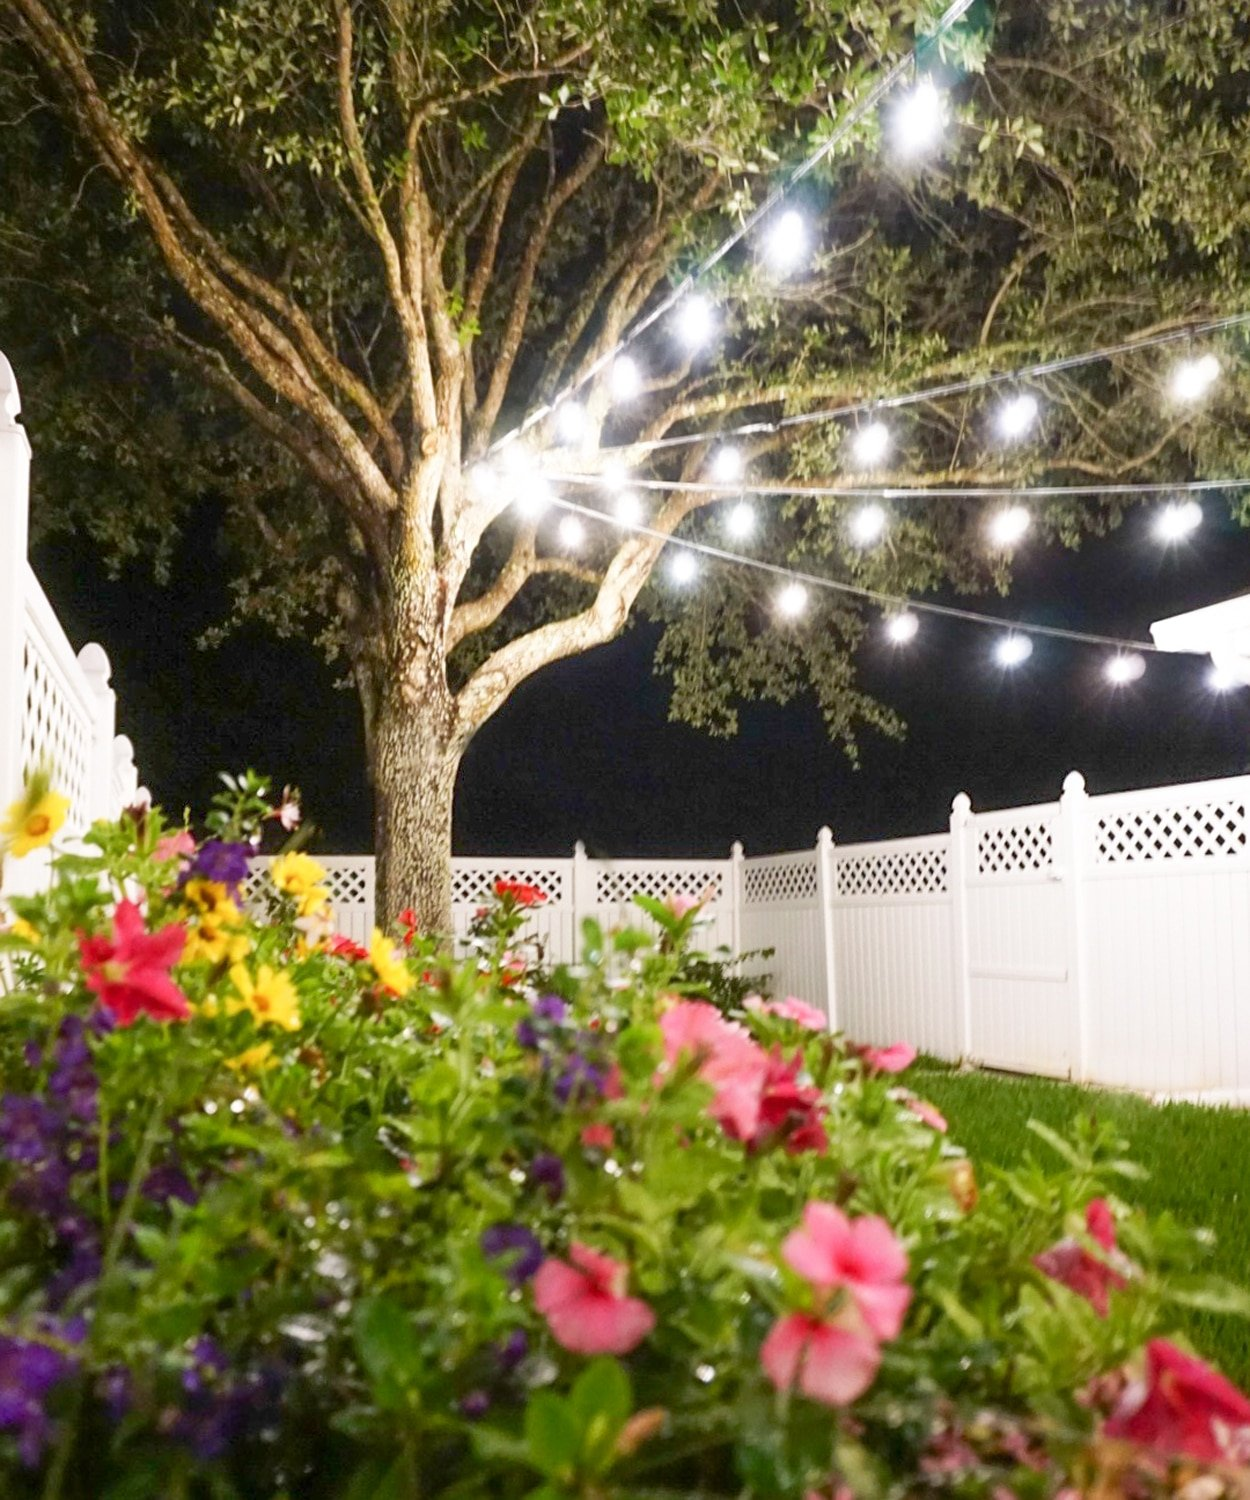 How to hang string lights on www.ashleybrookedesigns.com